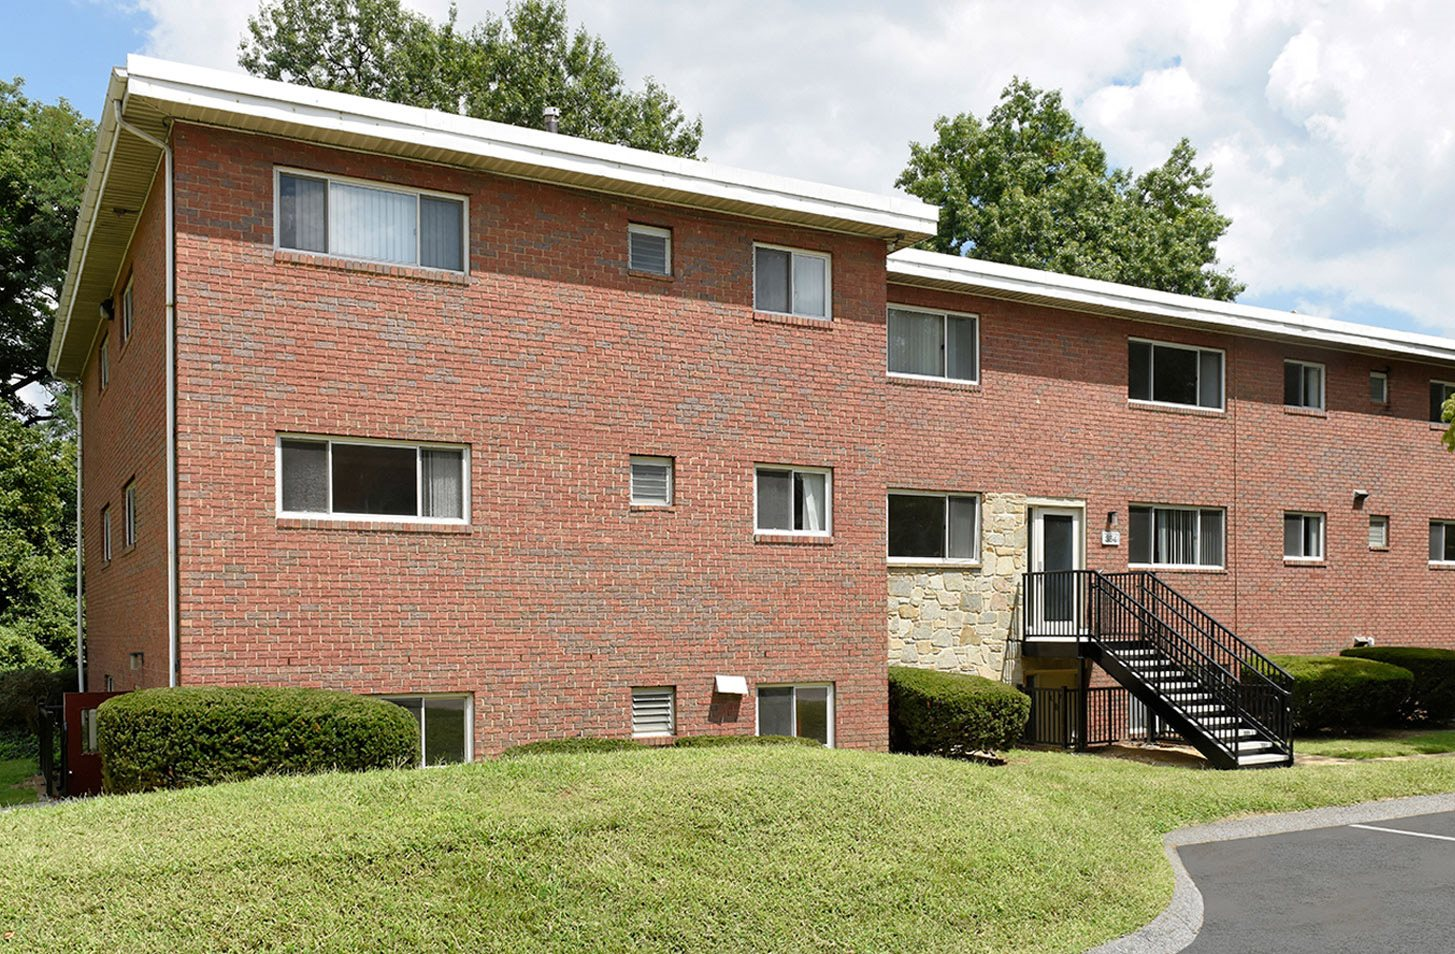 Apartments in Rogers Forge/Armagh, Towson | Stevenson Lane Apartments